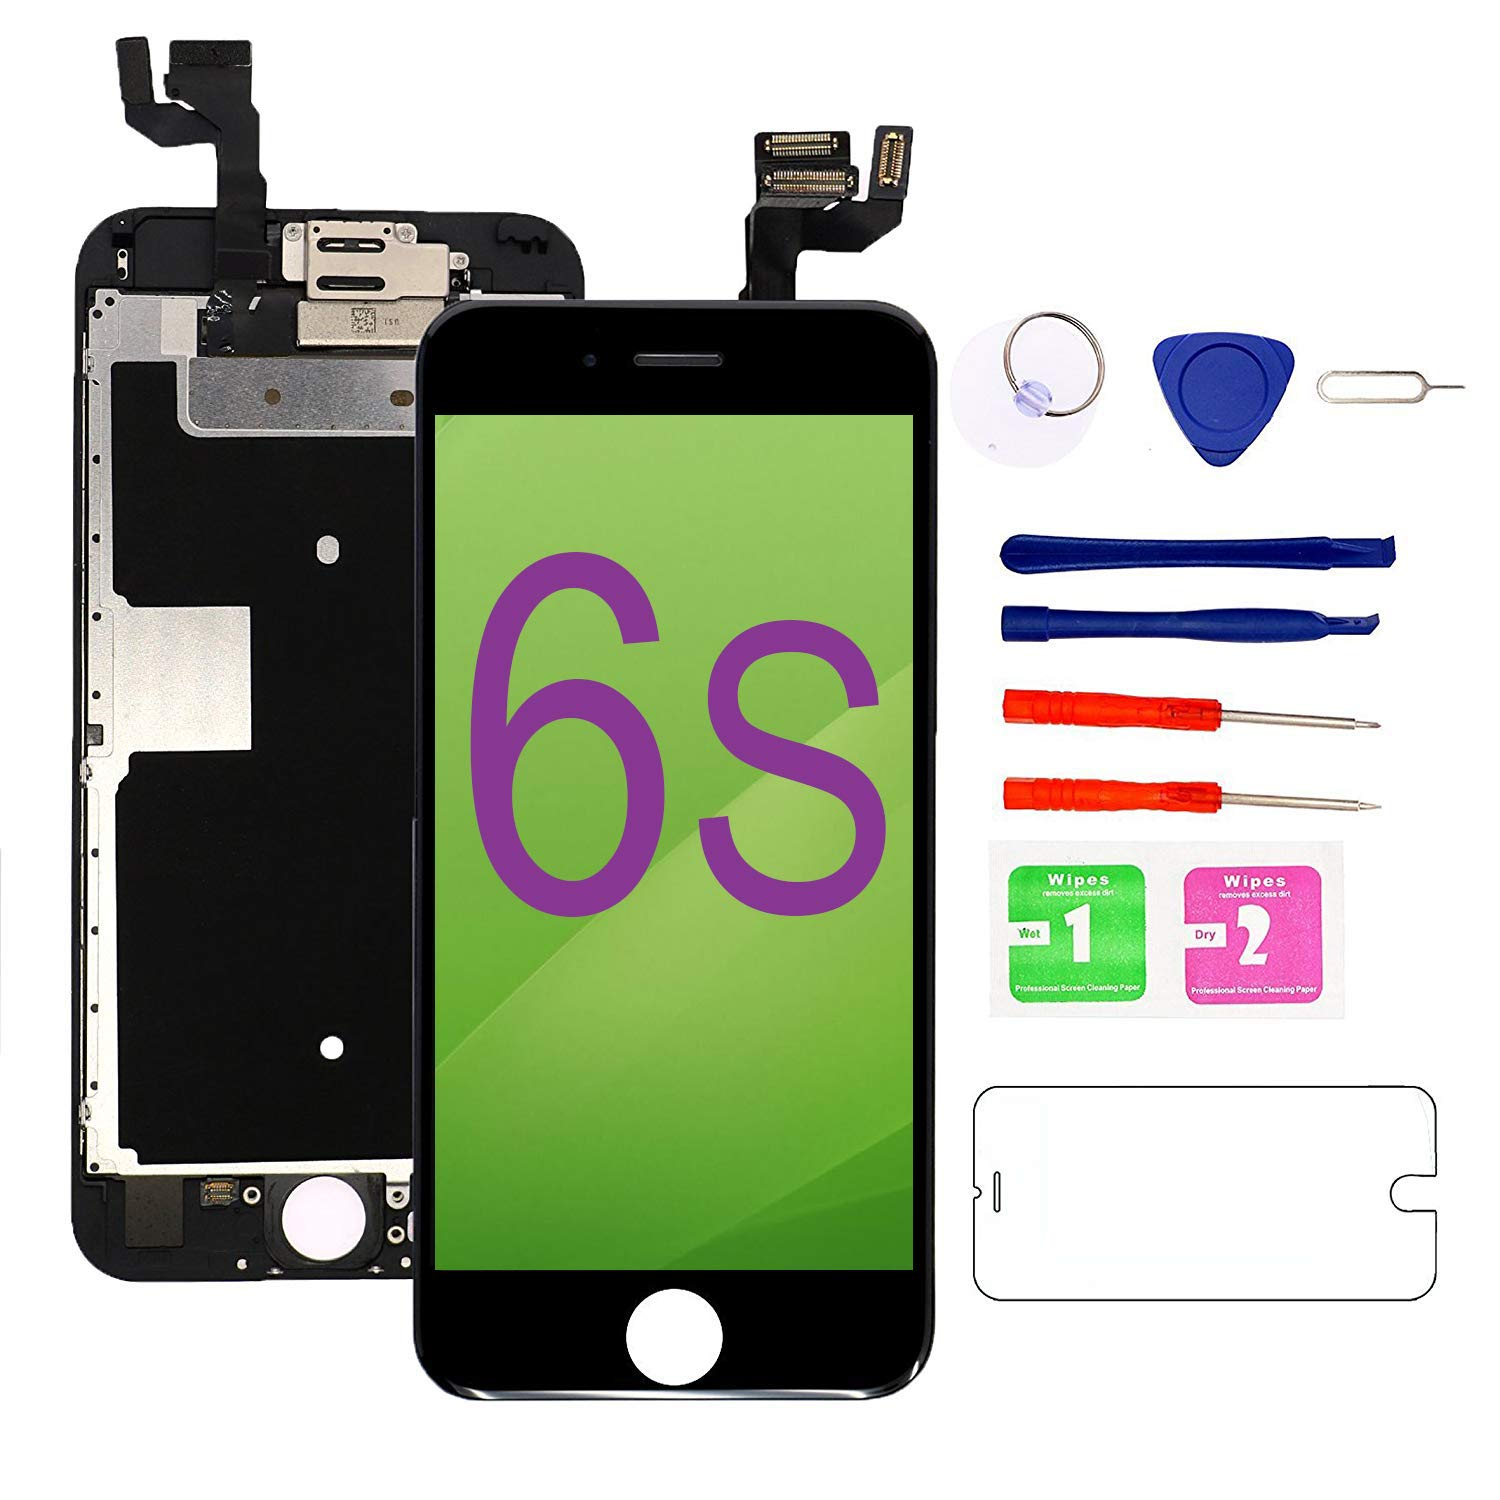 Nroech LCD Screen Replacement for iPhone 6 (Black) with Home Button, Full Assembly with Front Camera, Ear Speaker and Light/Proximity sensor, Repair Tools and Free Screen Protector Included. iPhone 6-Black